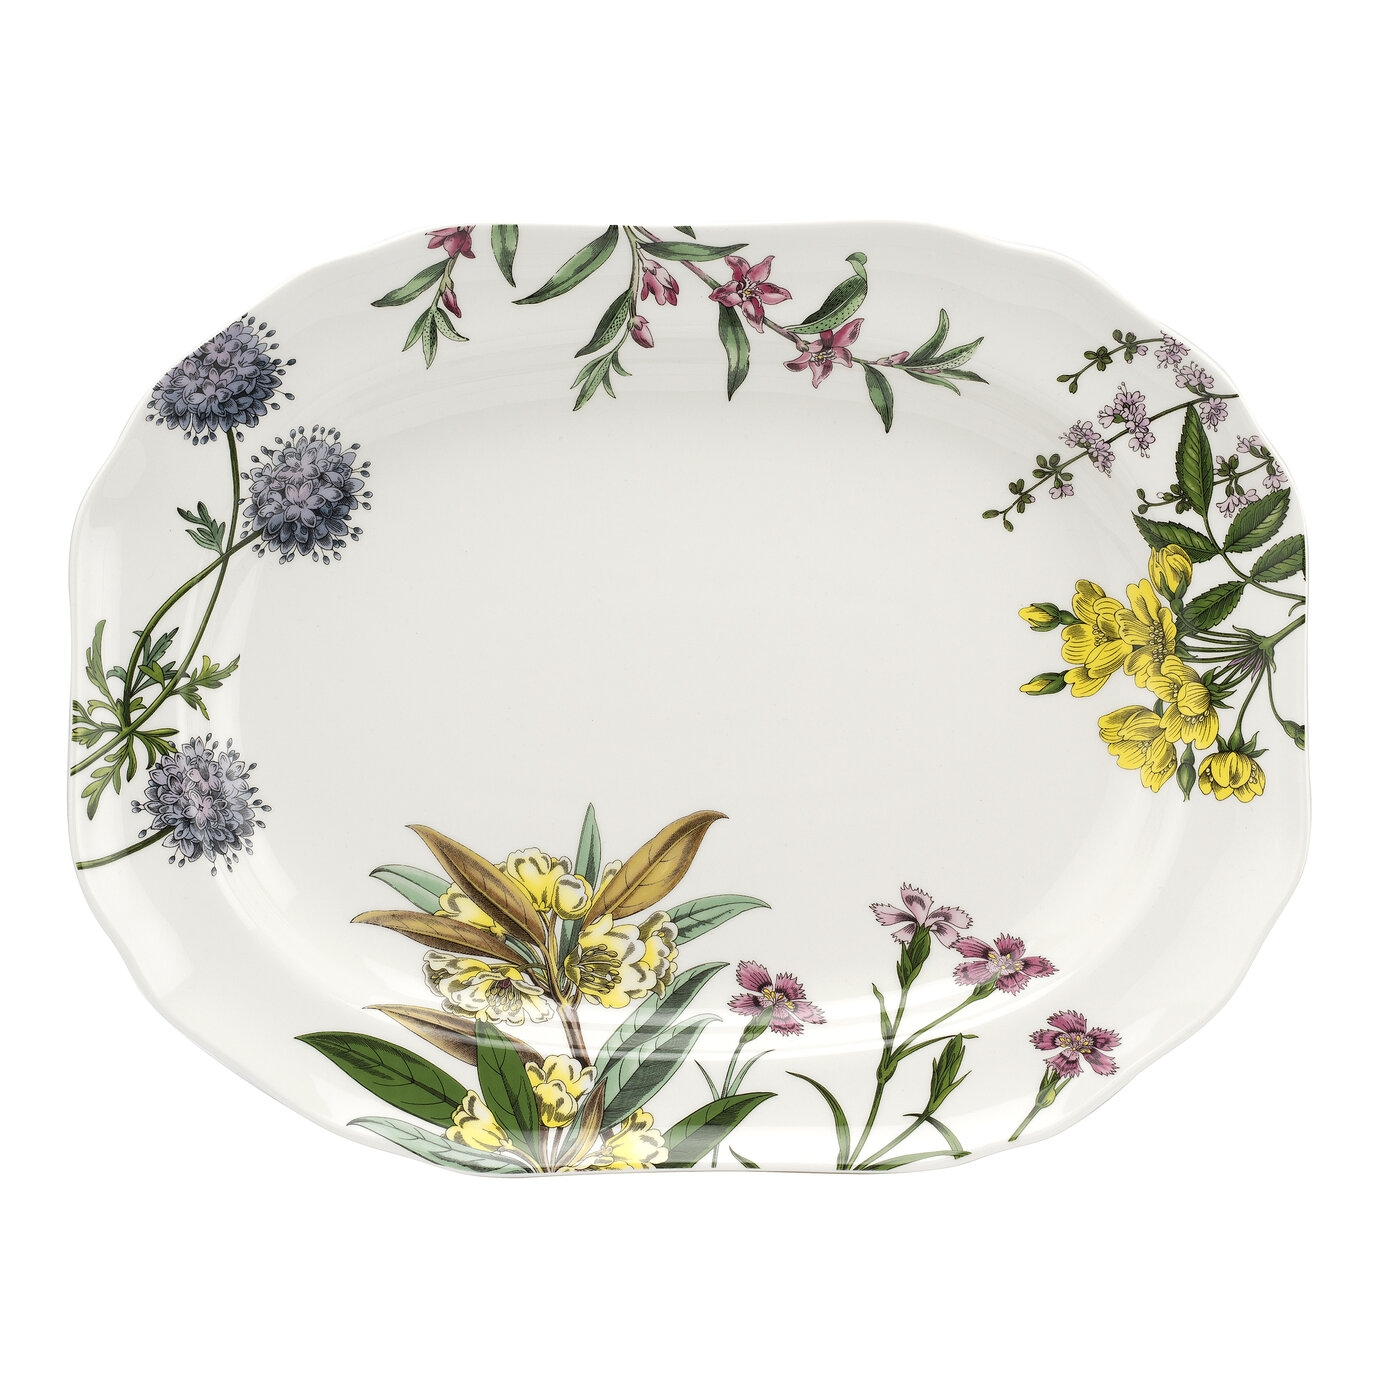 Spode Stafford Blooms 14 Inch Oval Platter image number 0